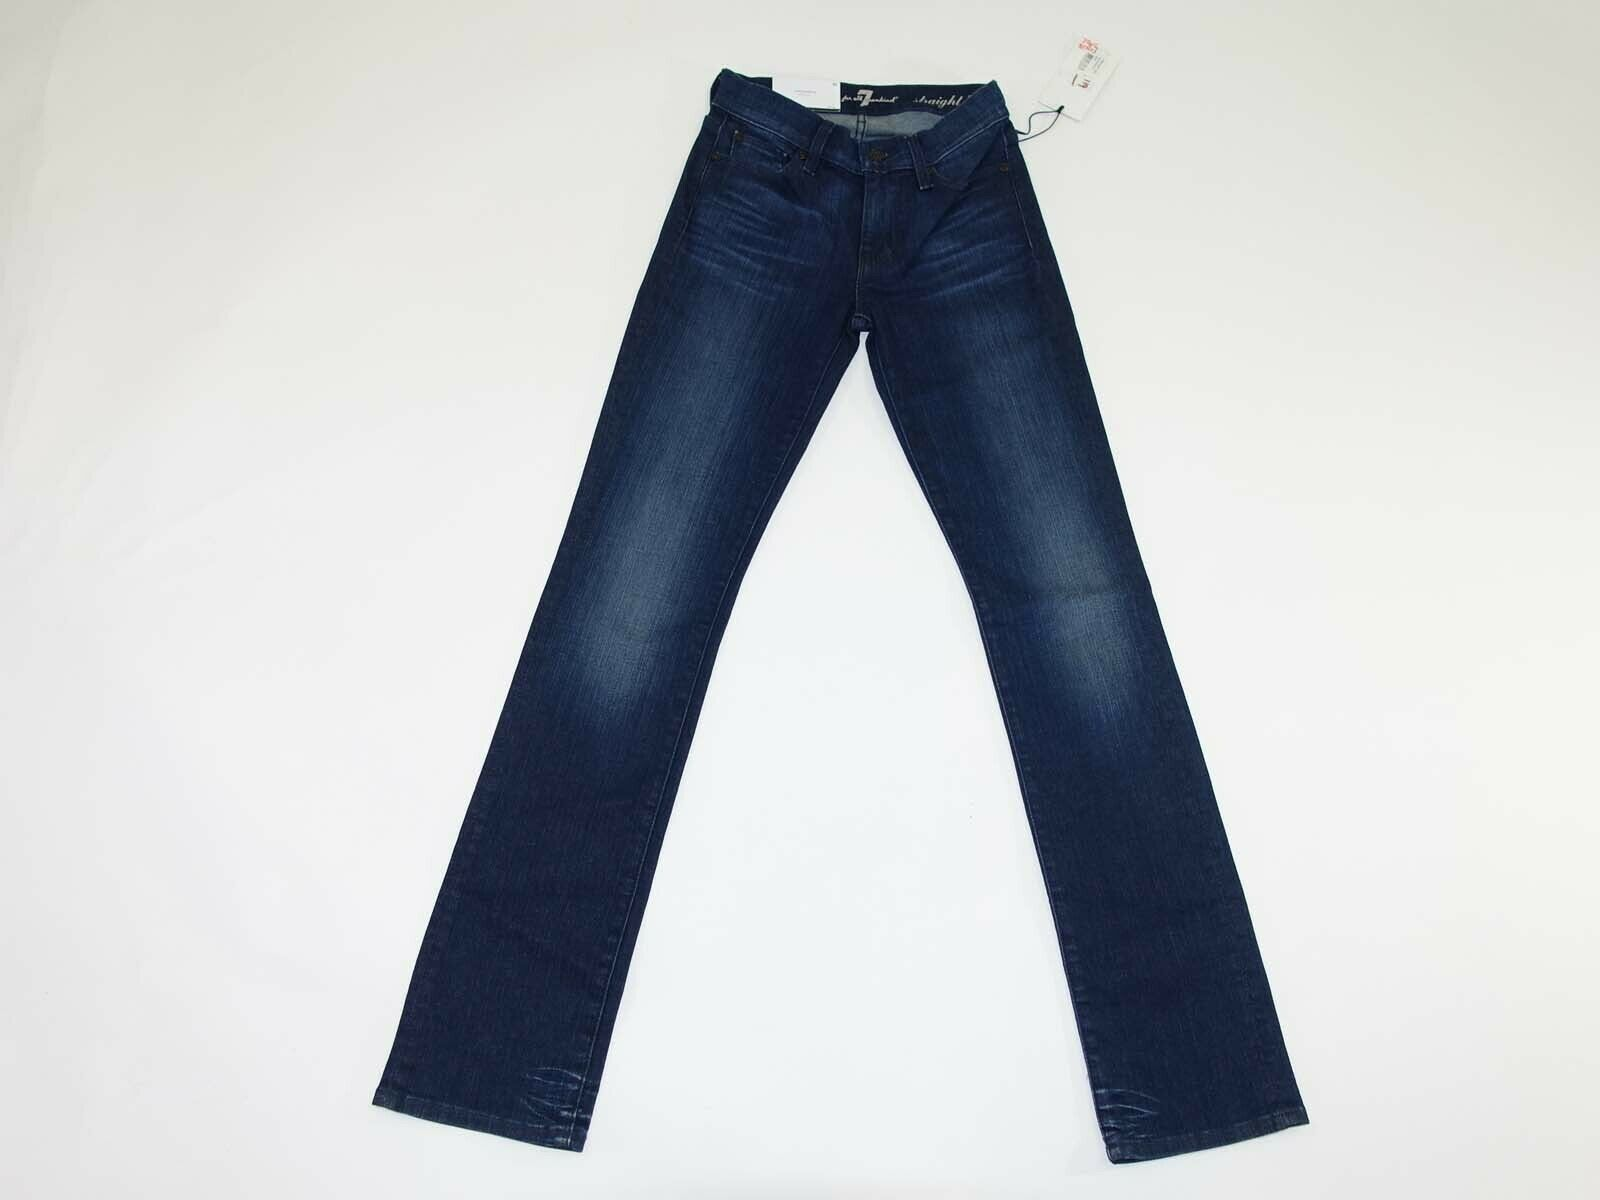 7 For All Mankind Women's Classic Straight Leg Jeans Size 23 x 31 NWT Dark Wash